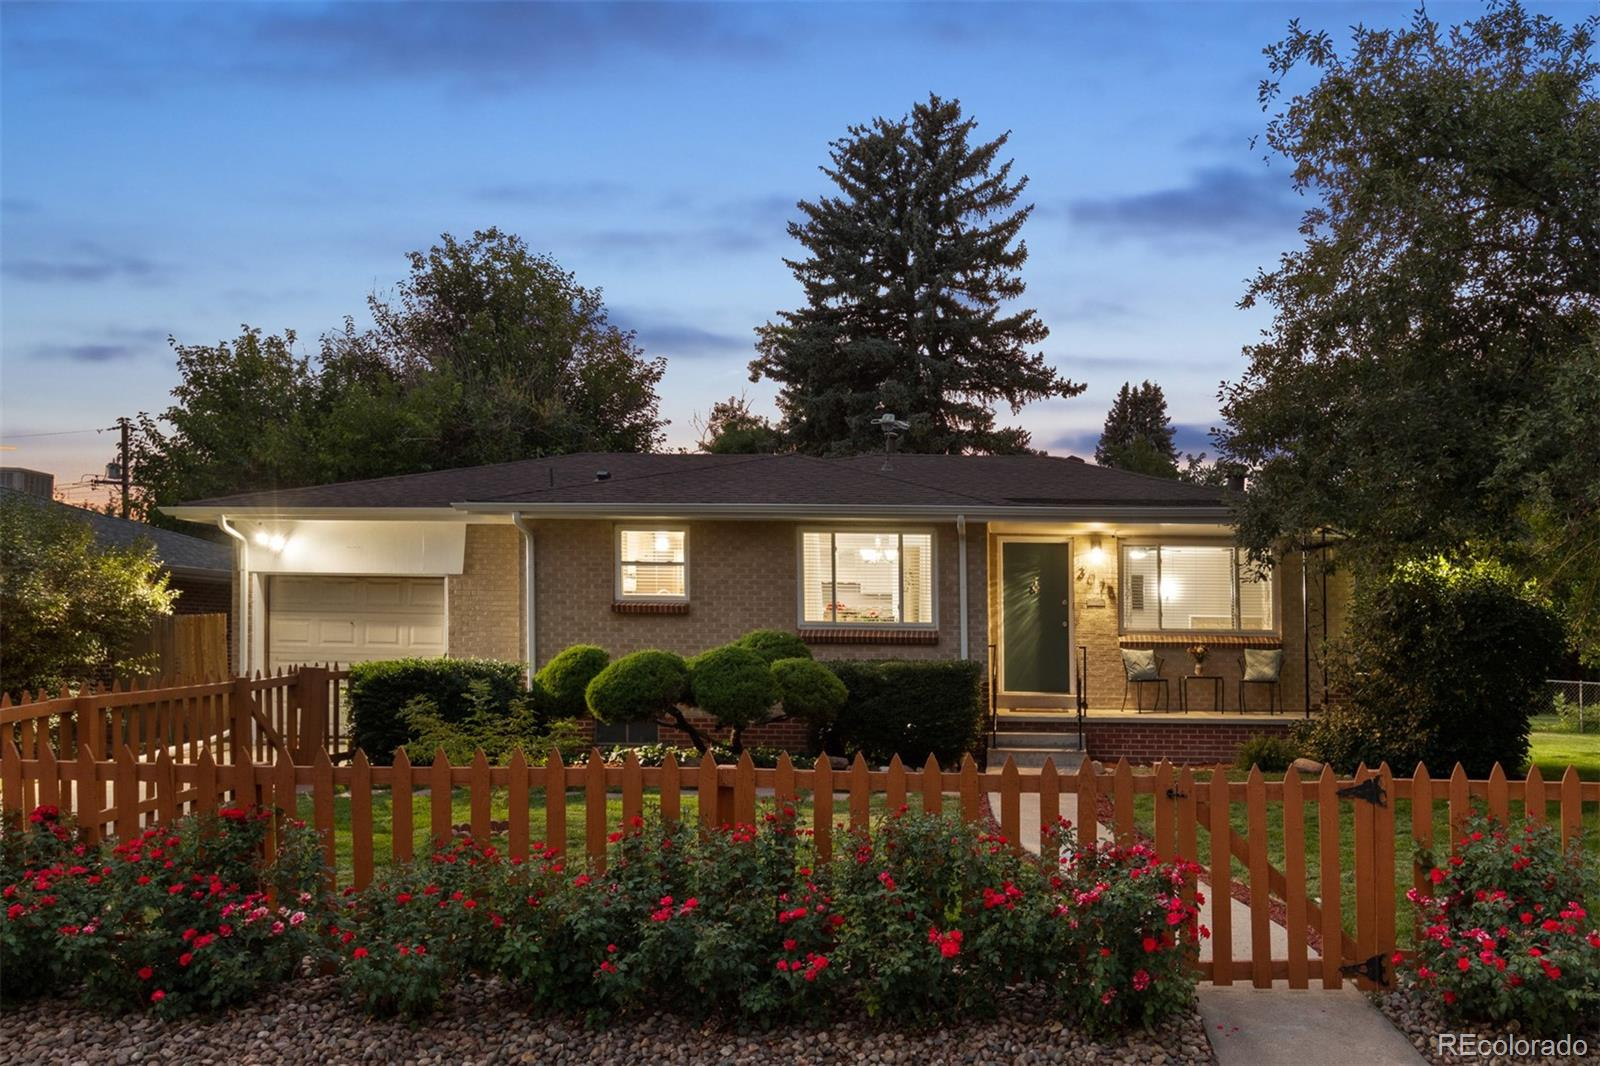 MLS# 3953143 - 38 - 3075 Quay Street, Wheat Ridge, CO 80033